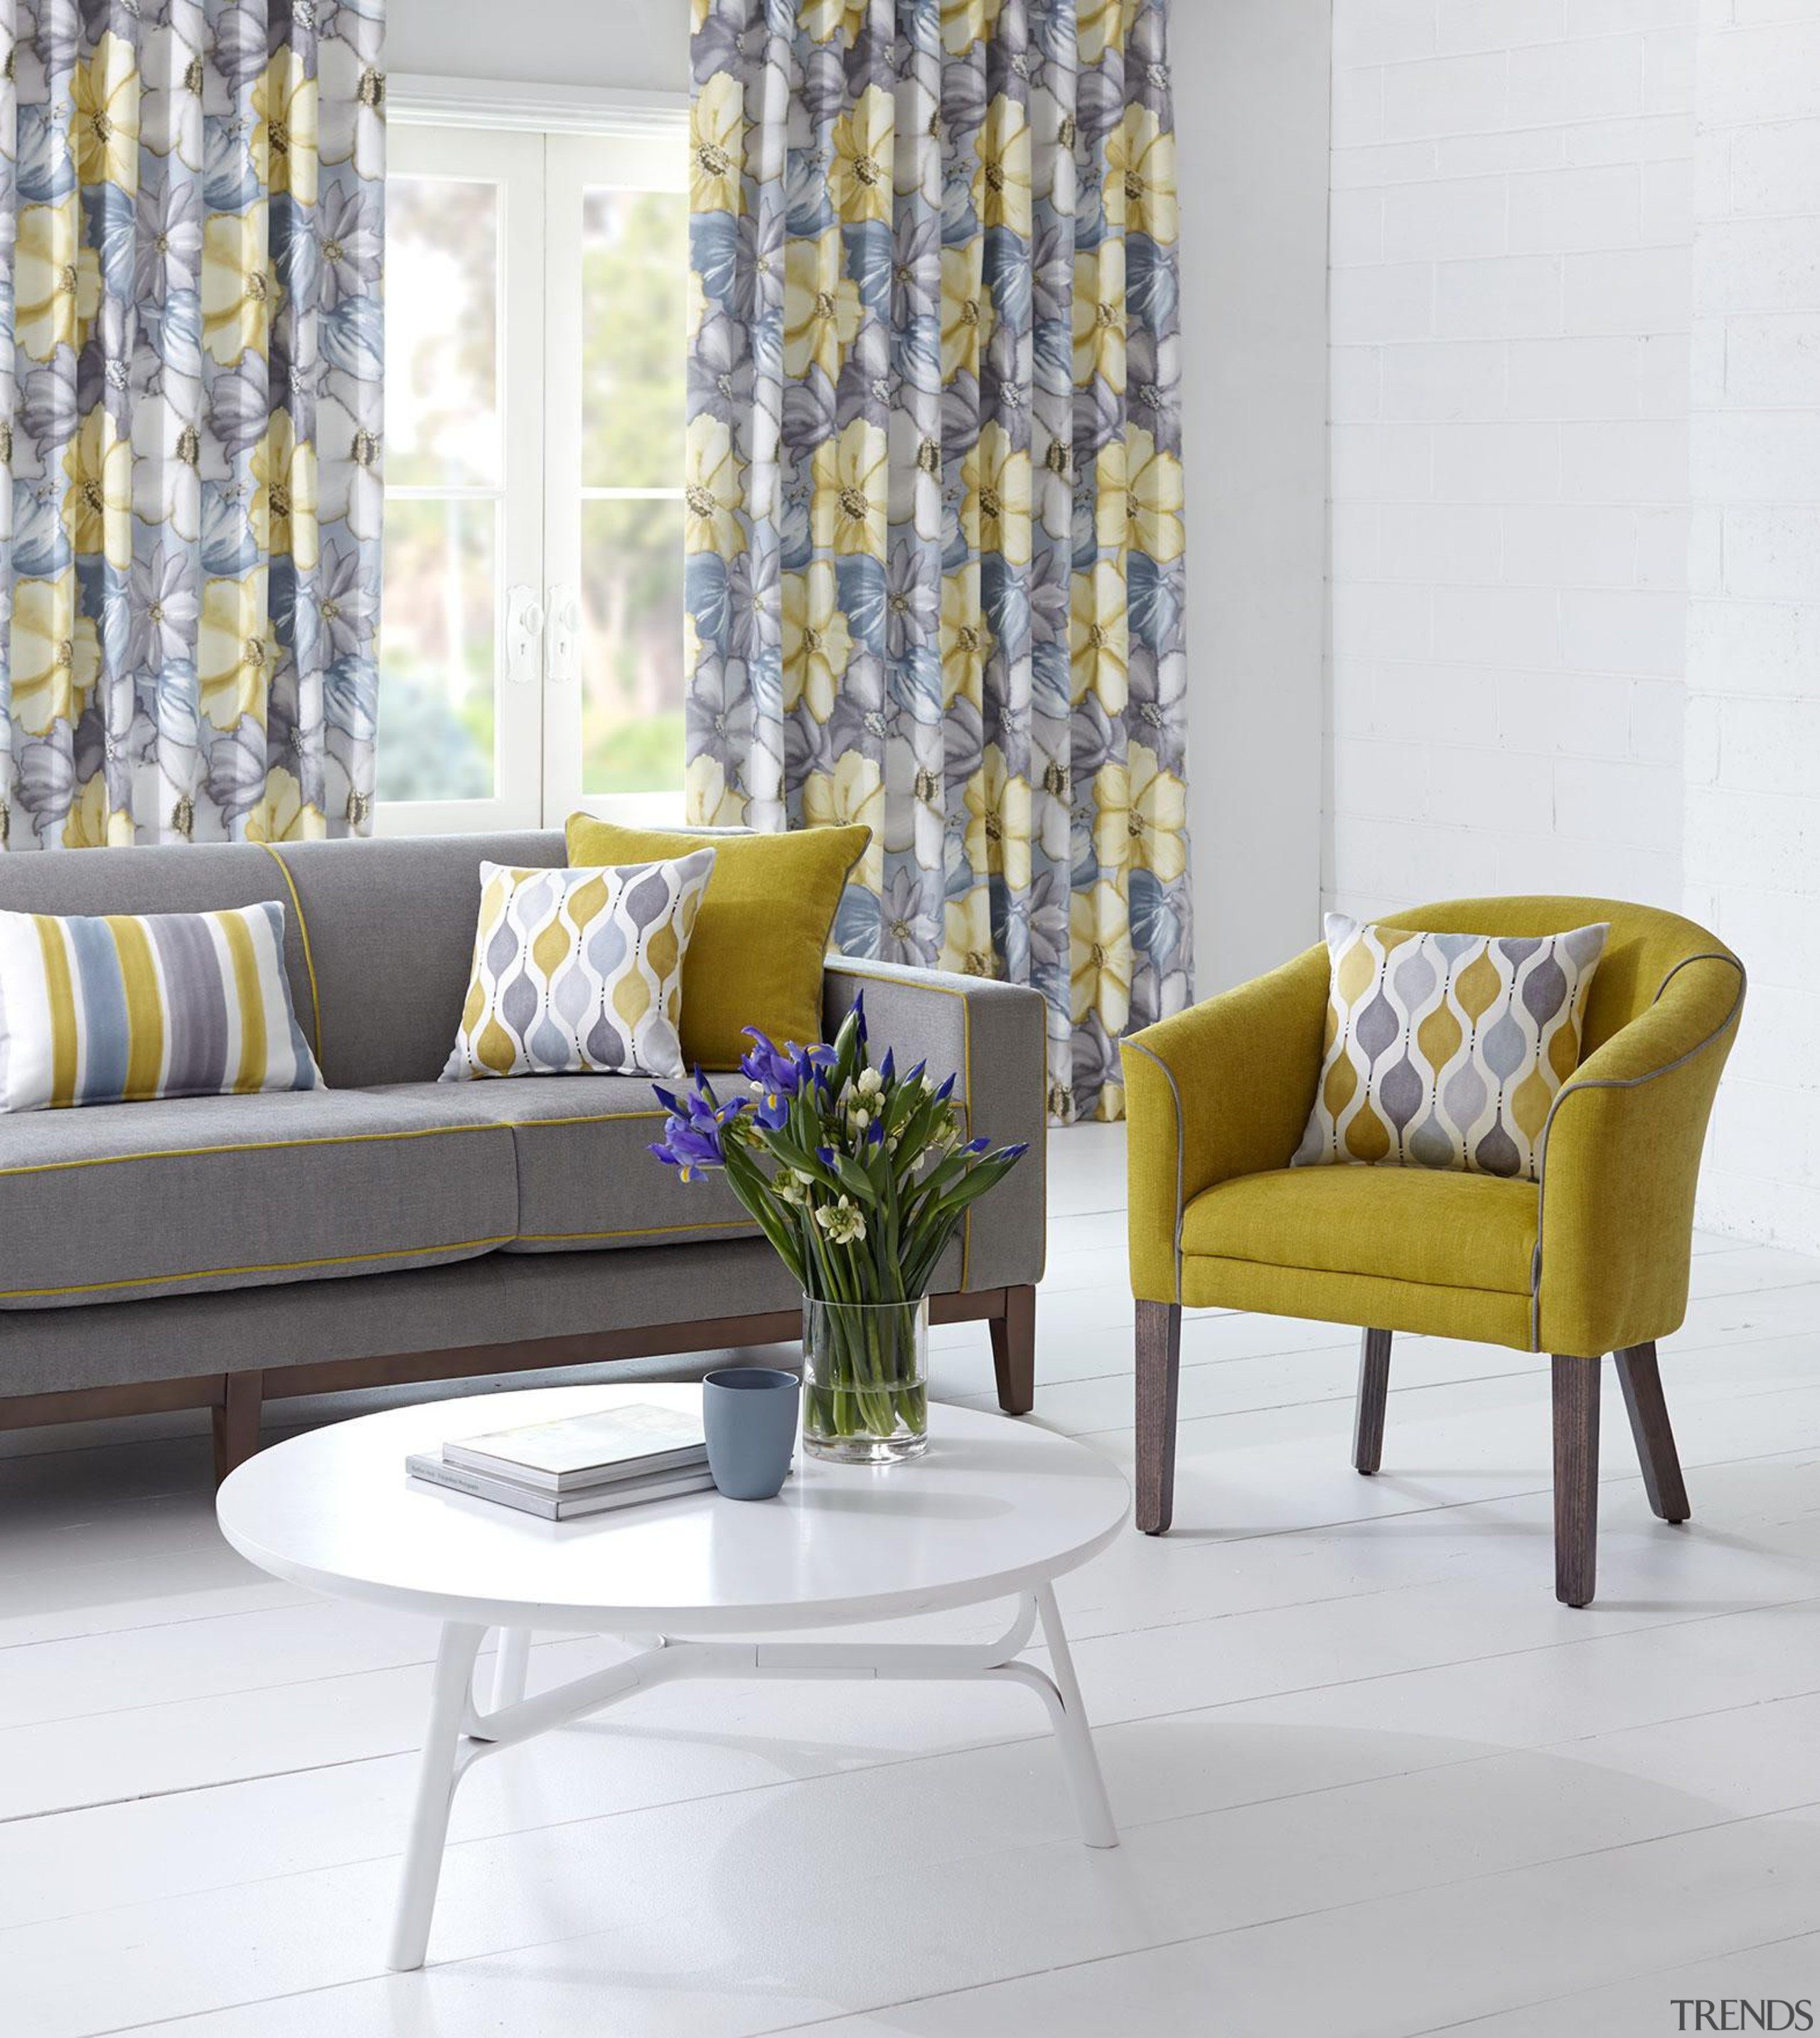 Kristina Collection - Kristina Collection - chair | chair, coffee table, couch, curtain, furniture, home, interior design, living room, loveseat, table, window, window covering, window treatment, yellow, white